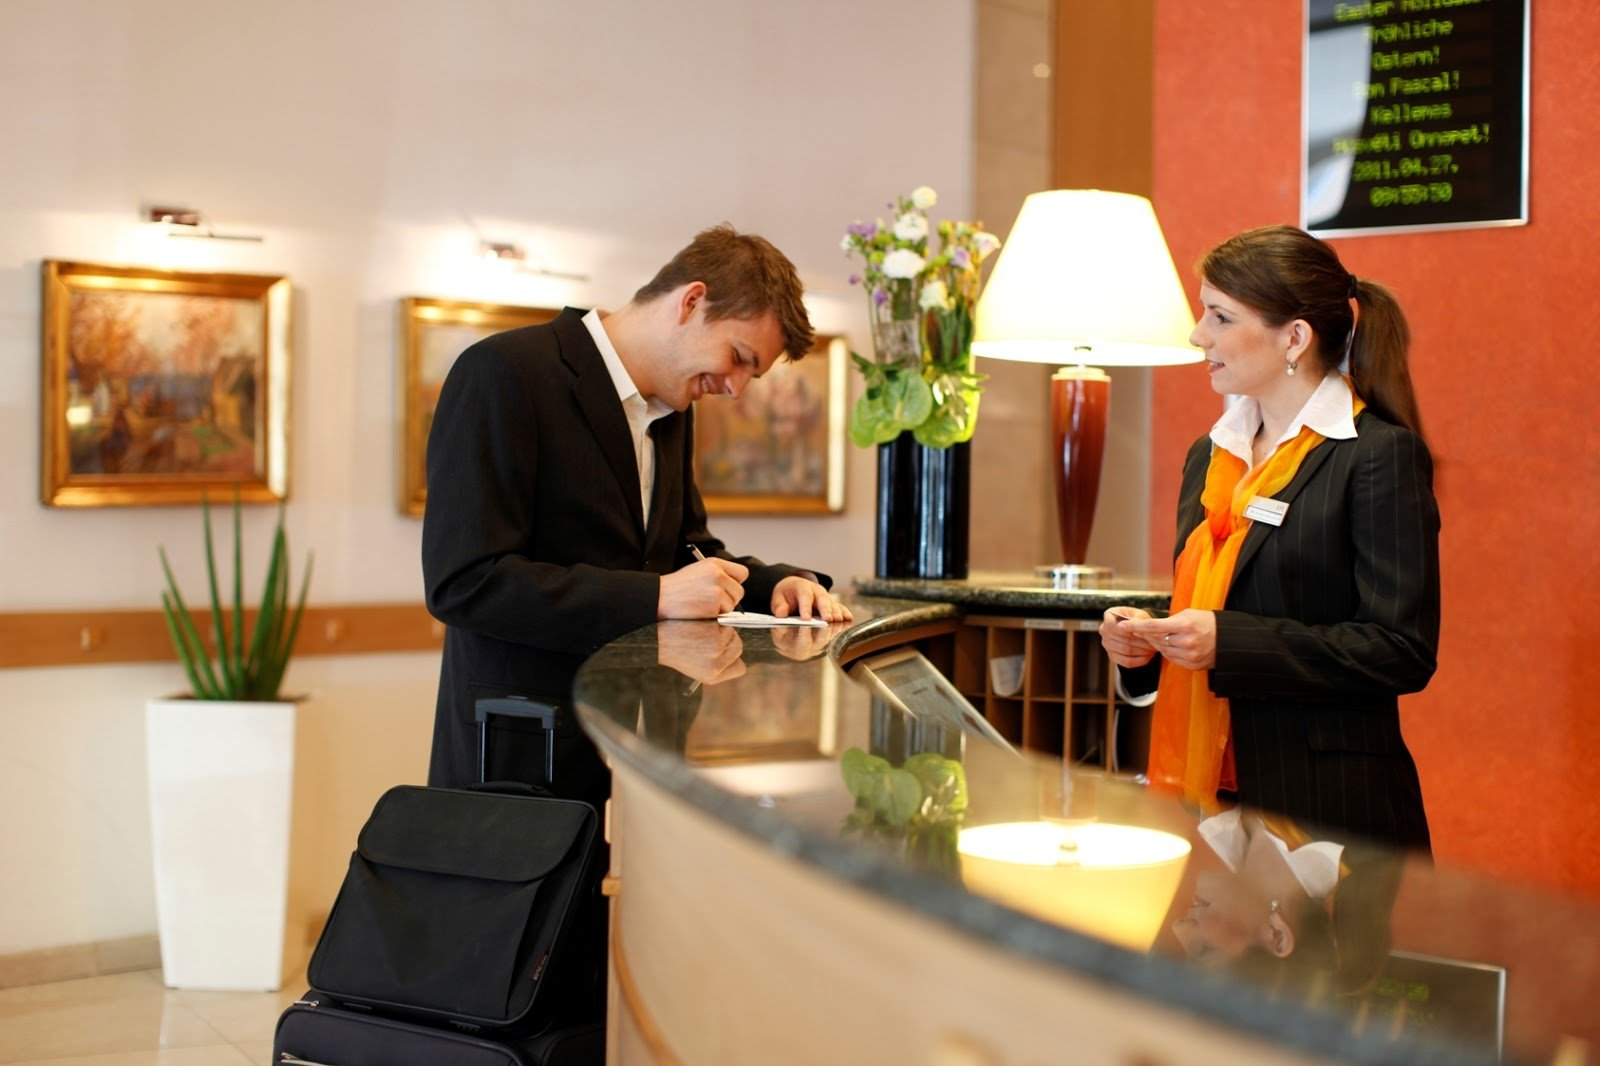 Try Hotel Management Software to Make Your Hotel Business More Efficient